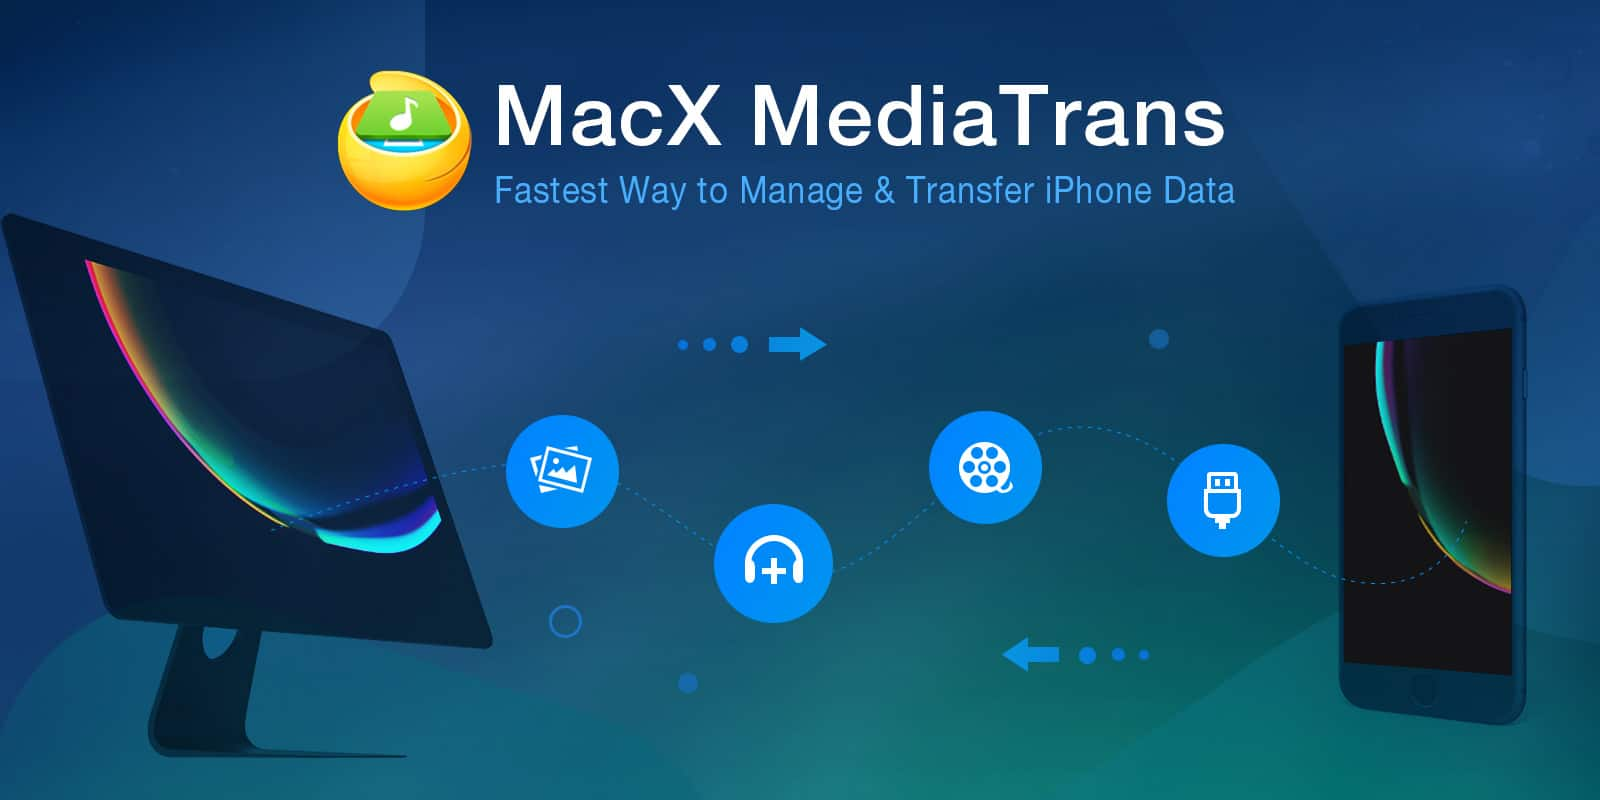 Get MacX MediaTrans for free and forget about iTunes for transferring data between iPhone and Mac.